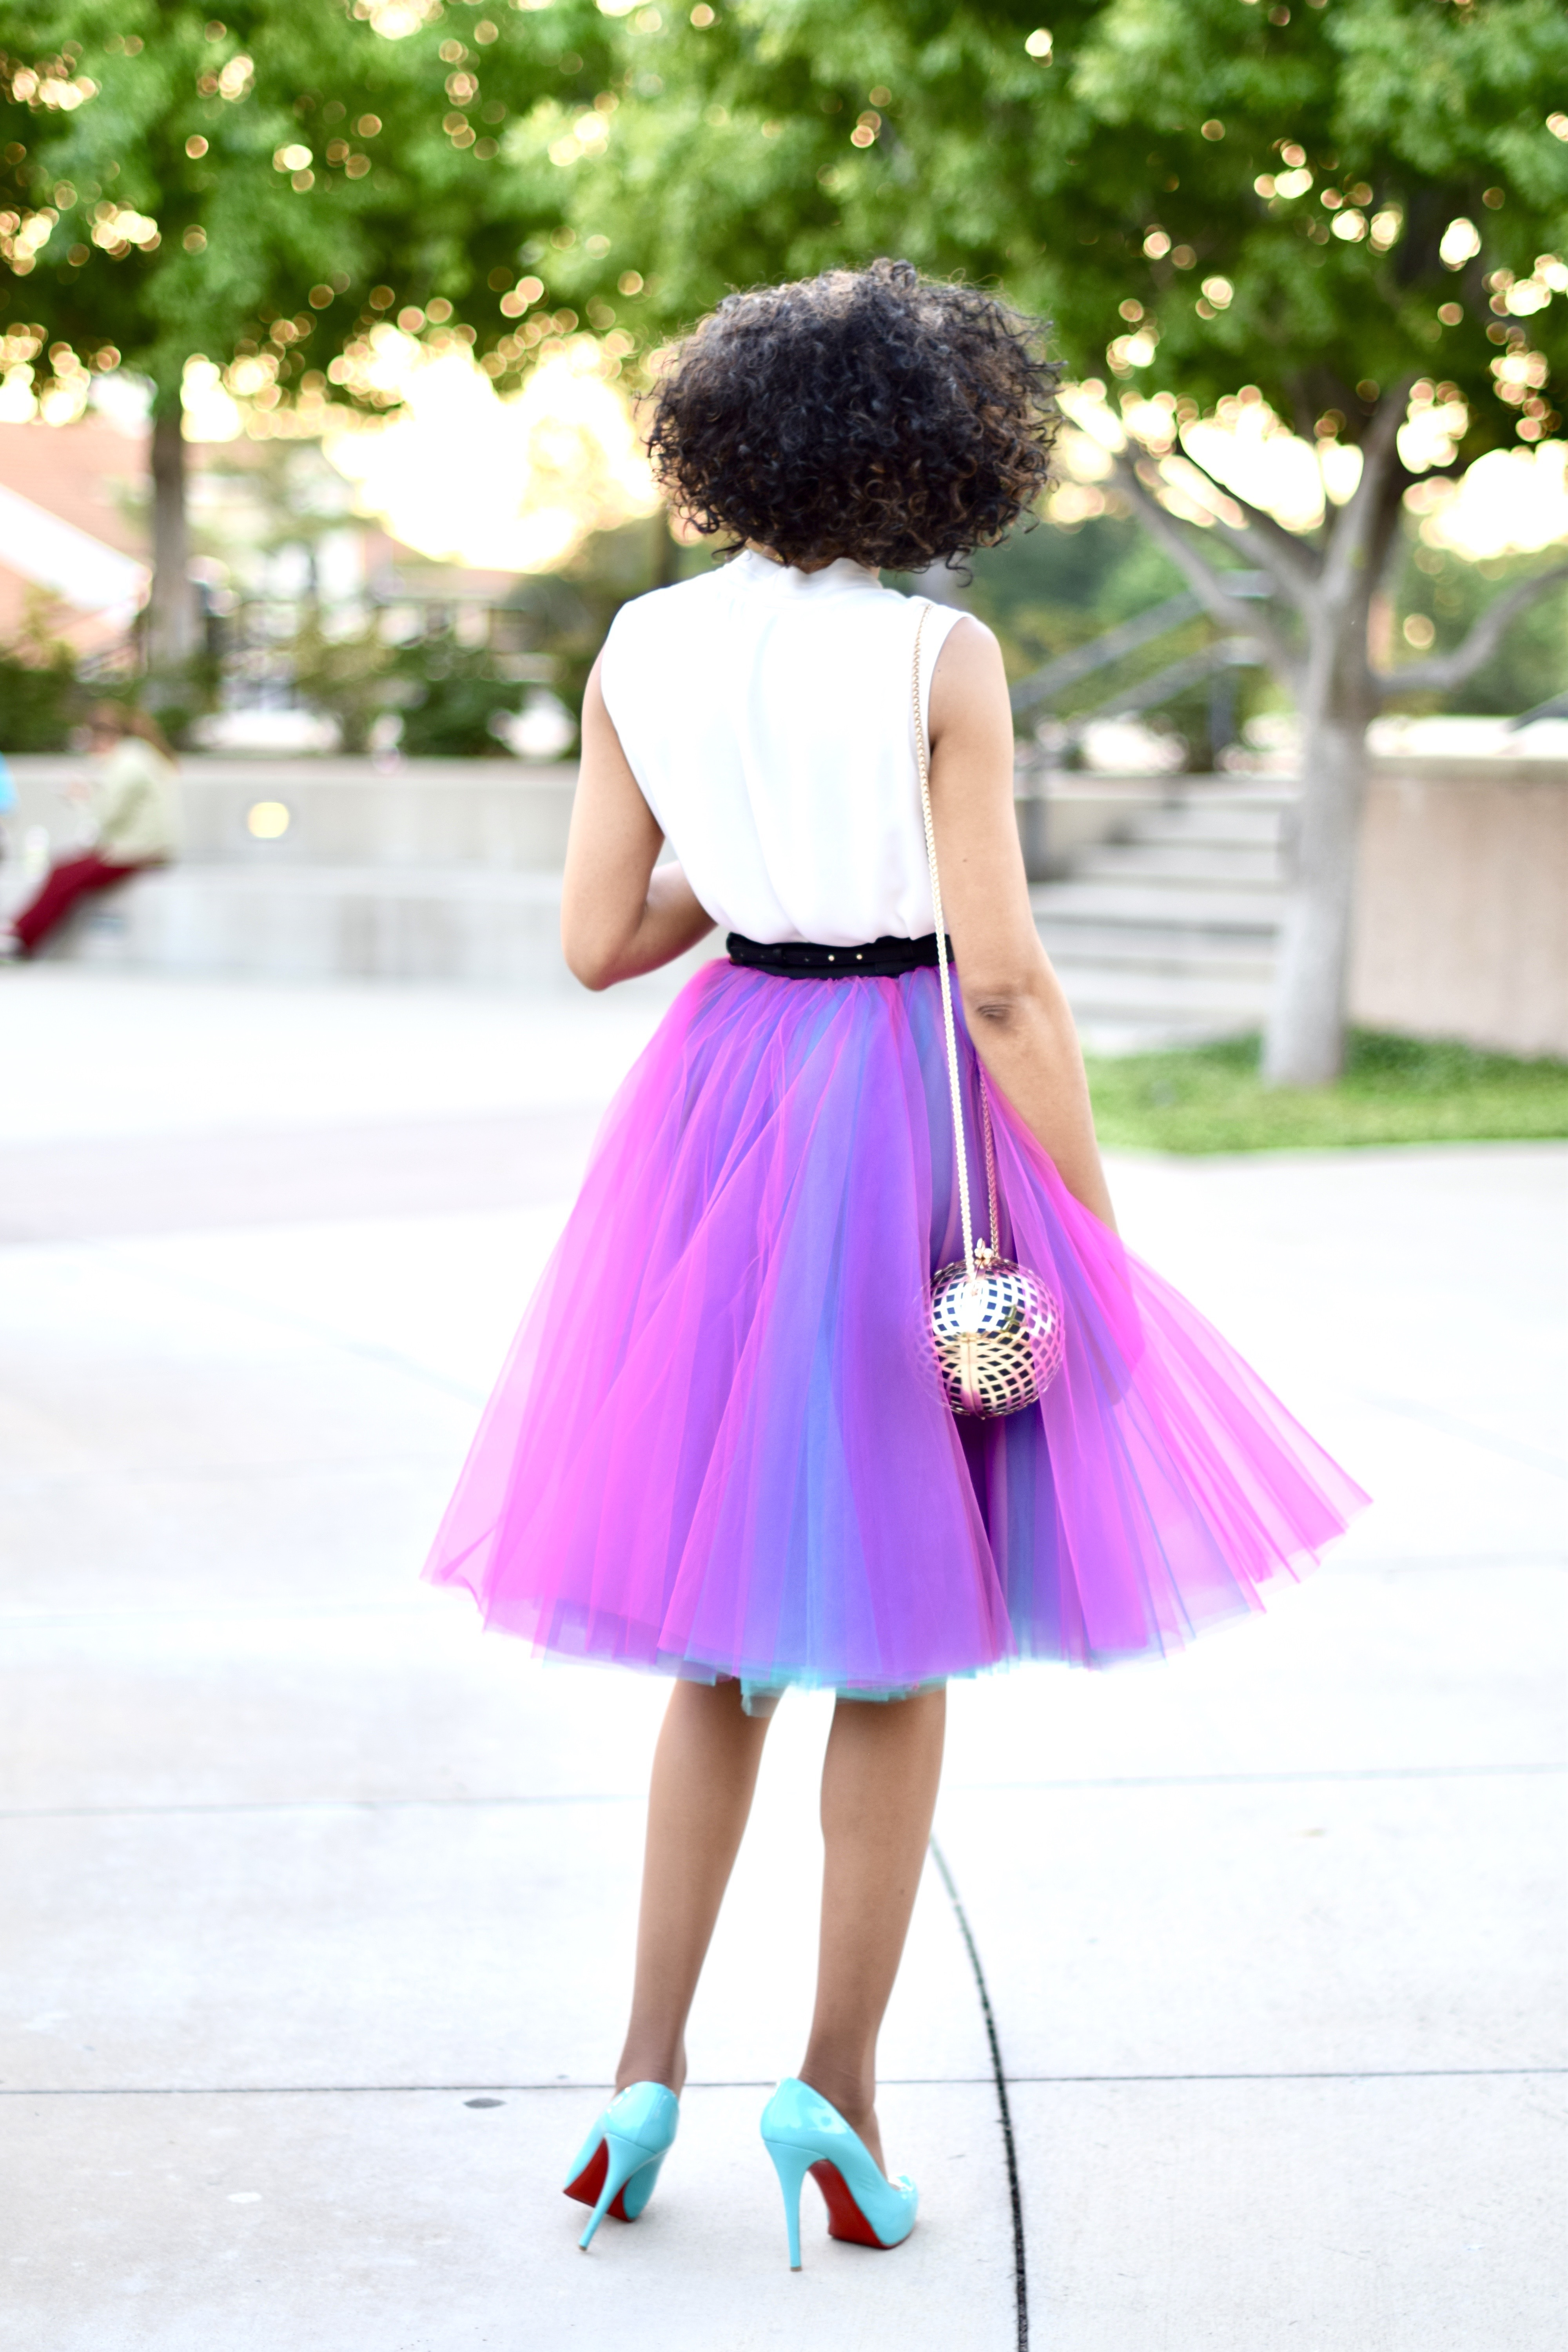 Tulle Skirt DIY Posted by Vivellefashion